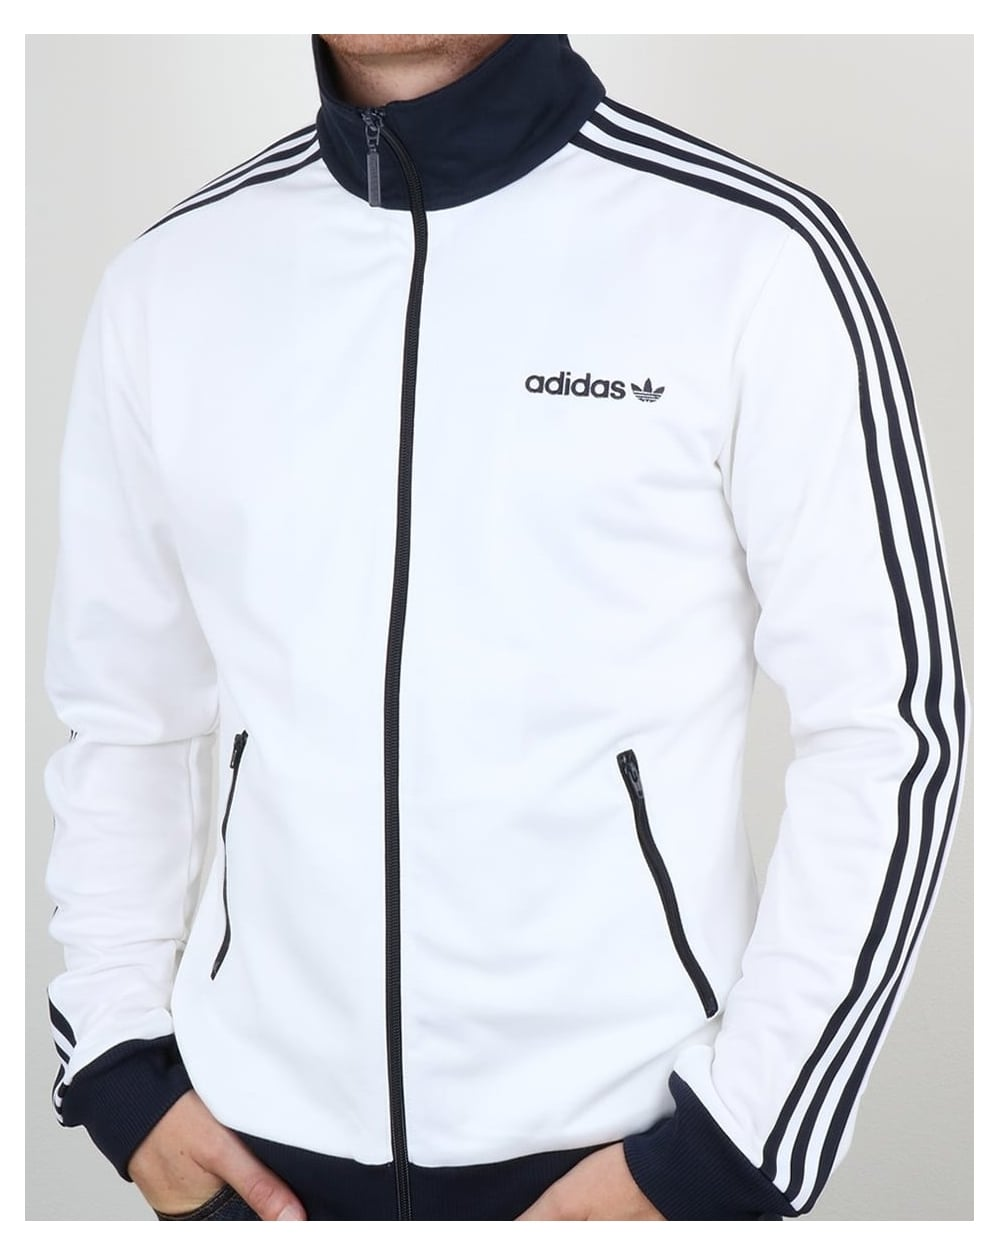 Adidas Originals Beckenbauer Track Top White fdd9e8be6